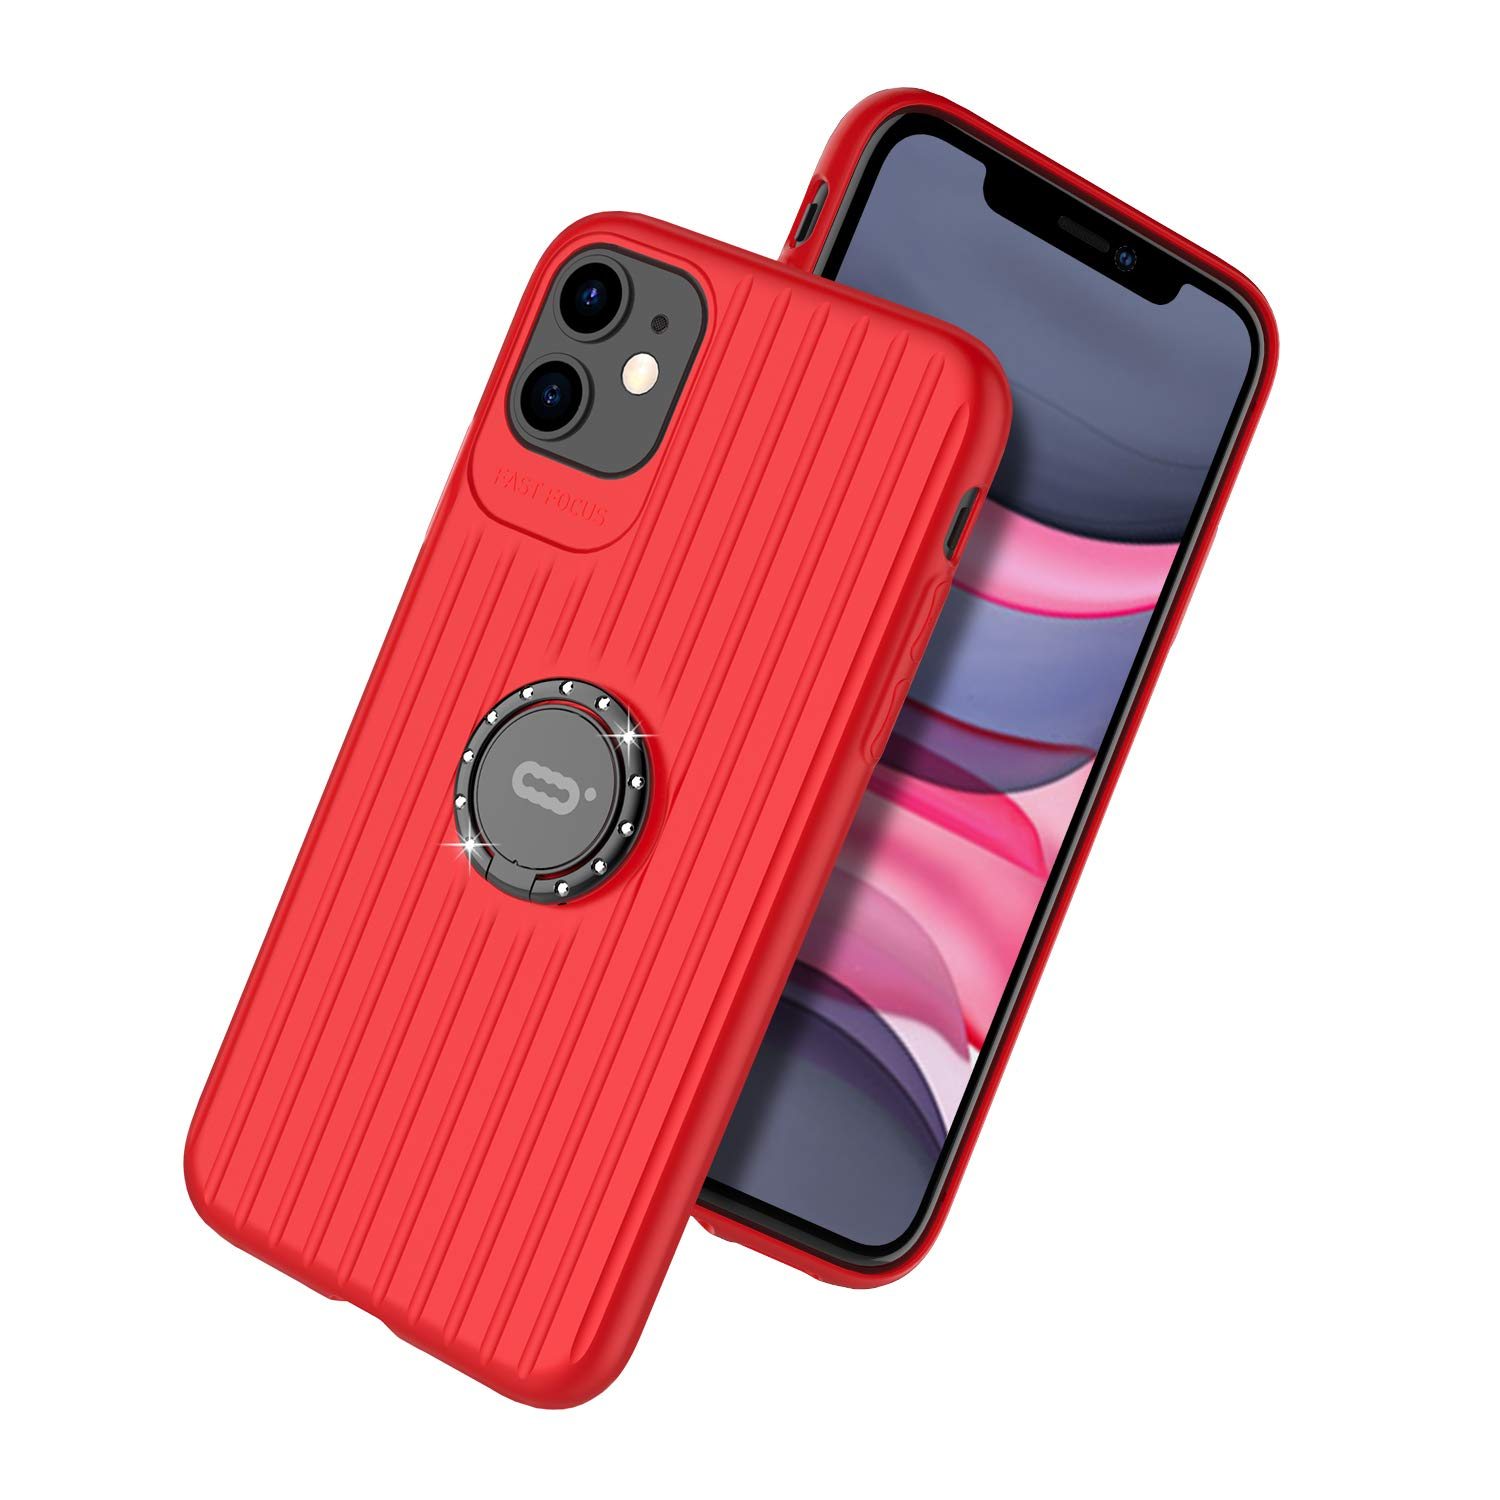 DESOF iPhone 11 Case, Ultra-Slim iPhone 11 6.1''Case with Fashion Sparkling Bling Rhinestone Ring Holder Stand Compatible for Magnetic Car Mount Cover Case for iPhone 11 (2019) 6.1 inch-Red